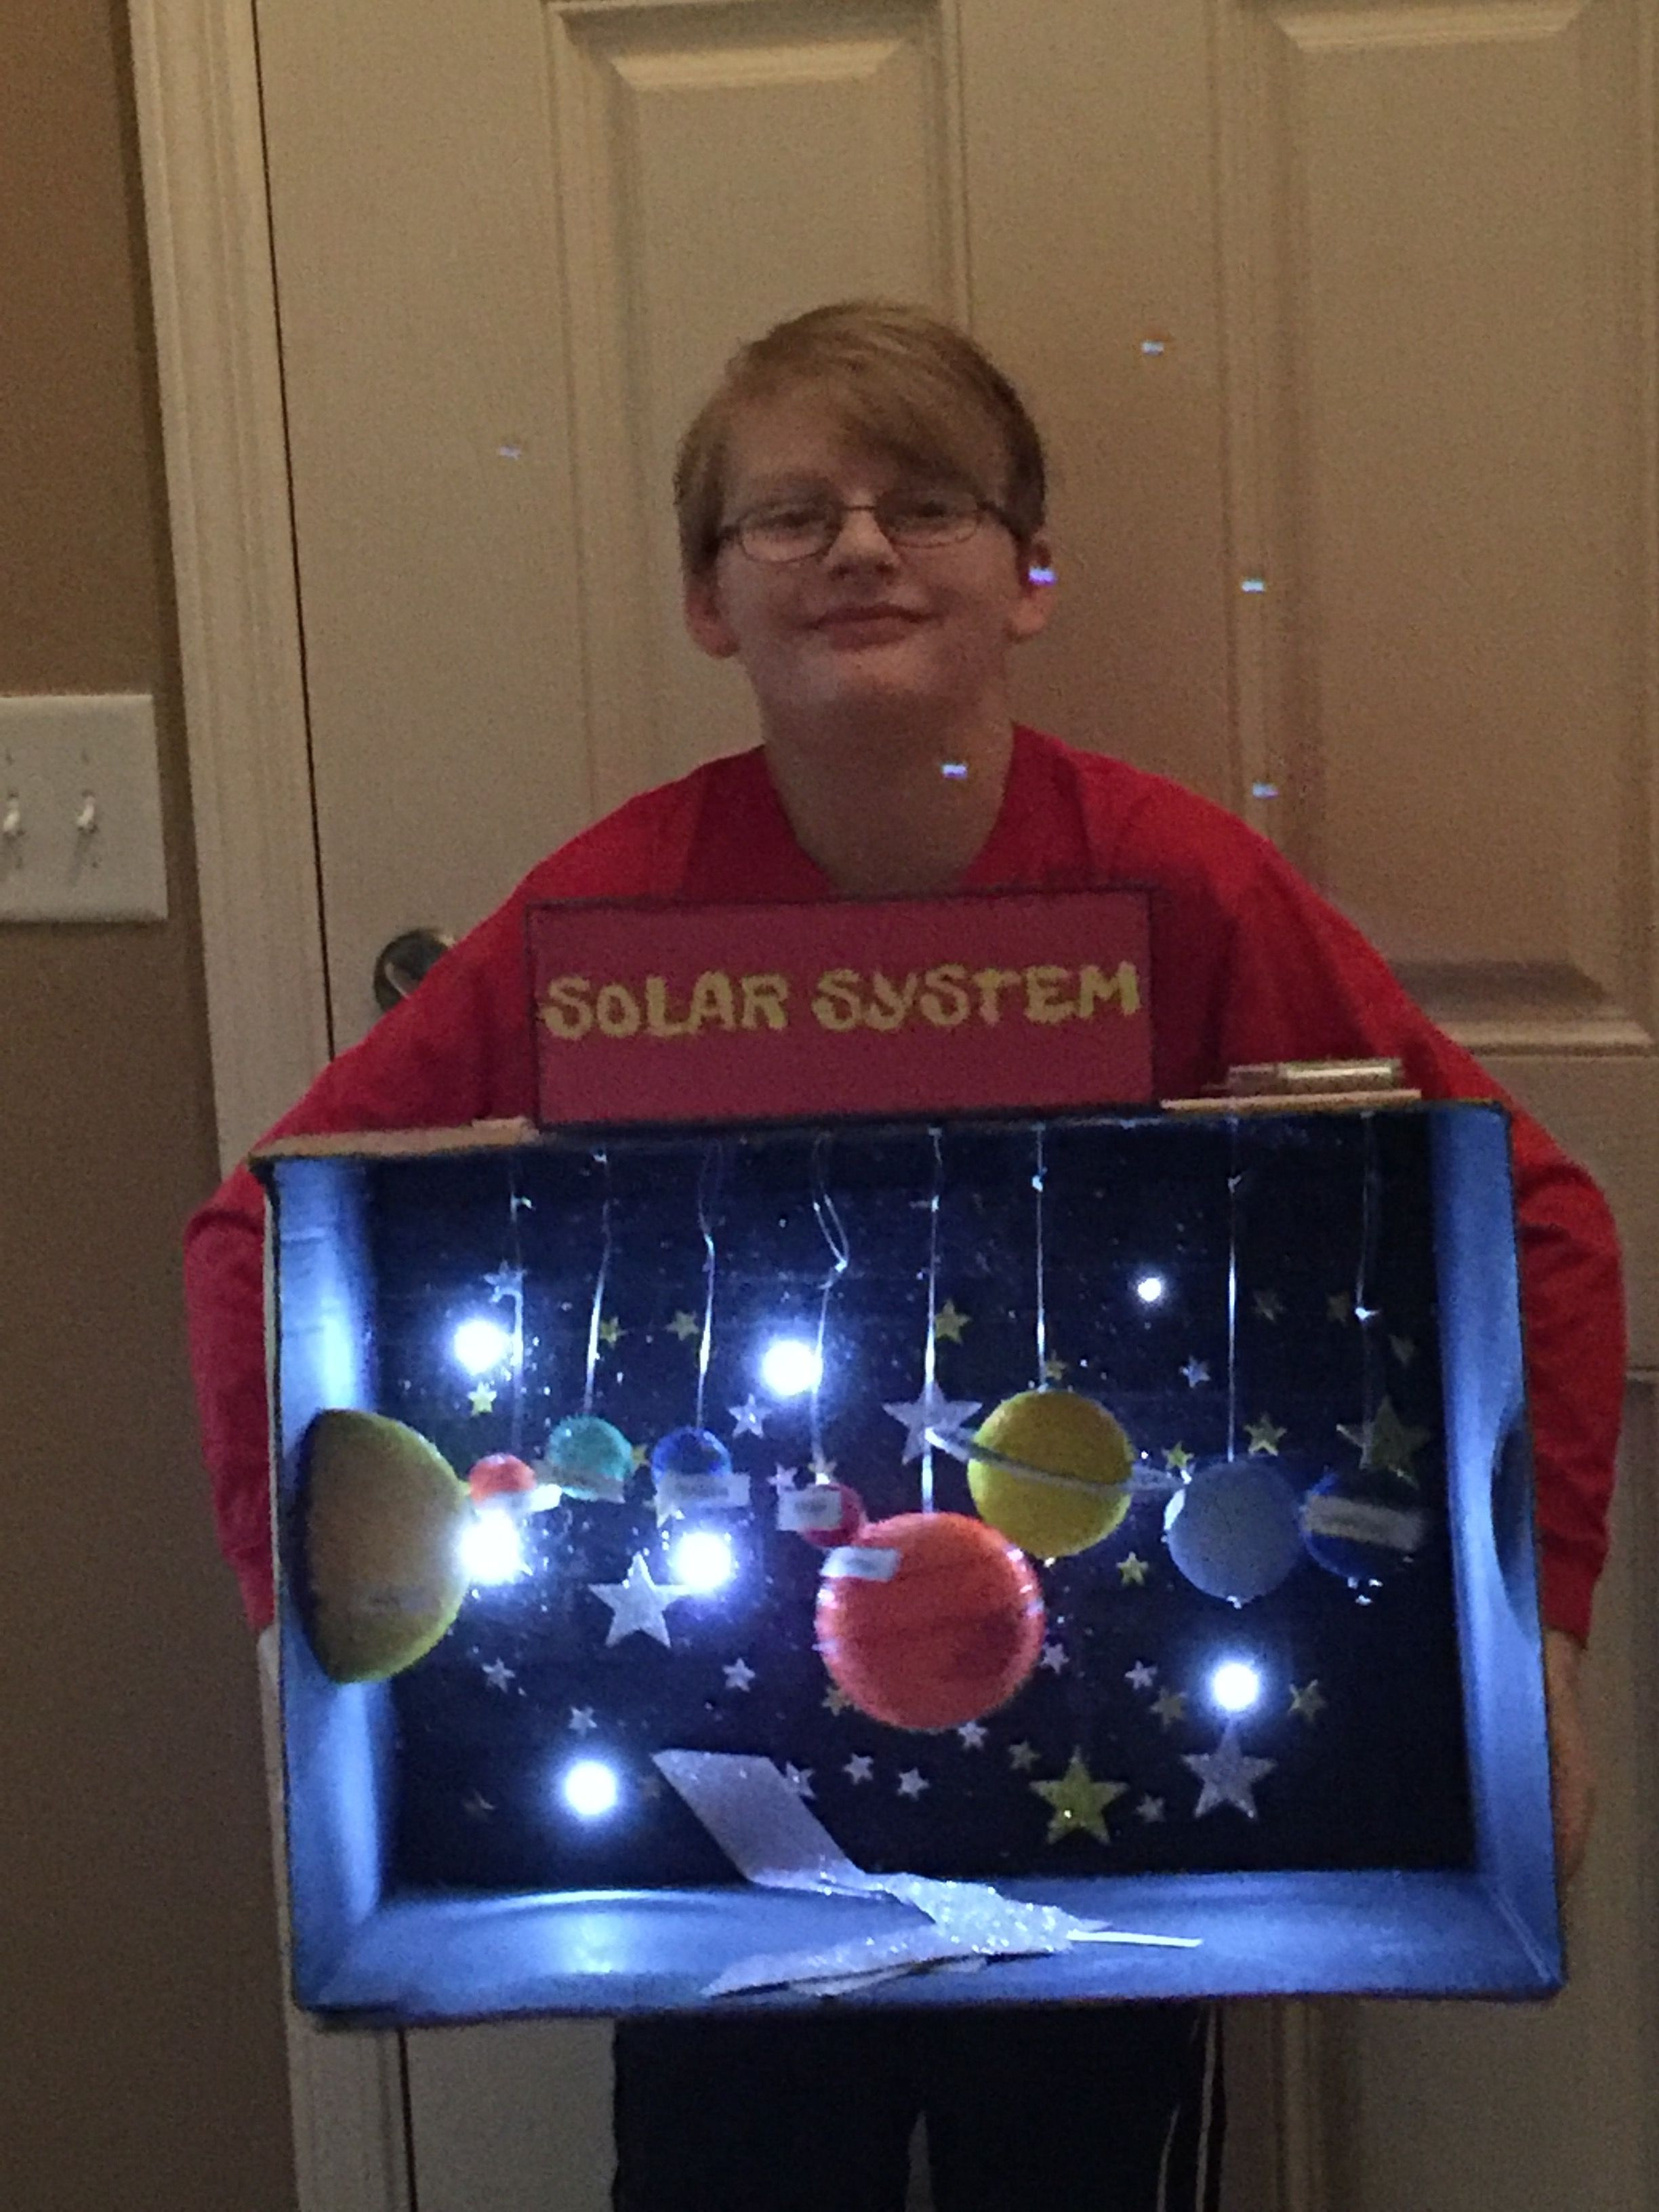 Best ideas about Kids Project Ideas . Save or Pin Ezra s 3rd grade solar system project Now.